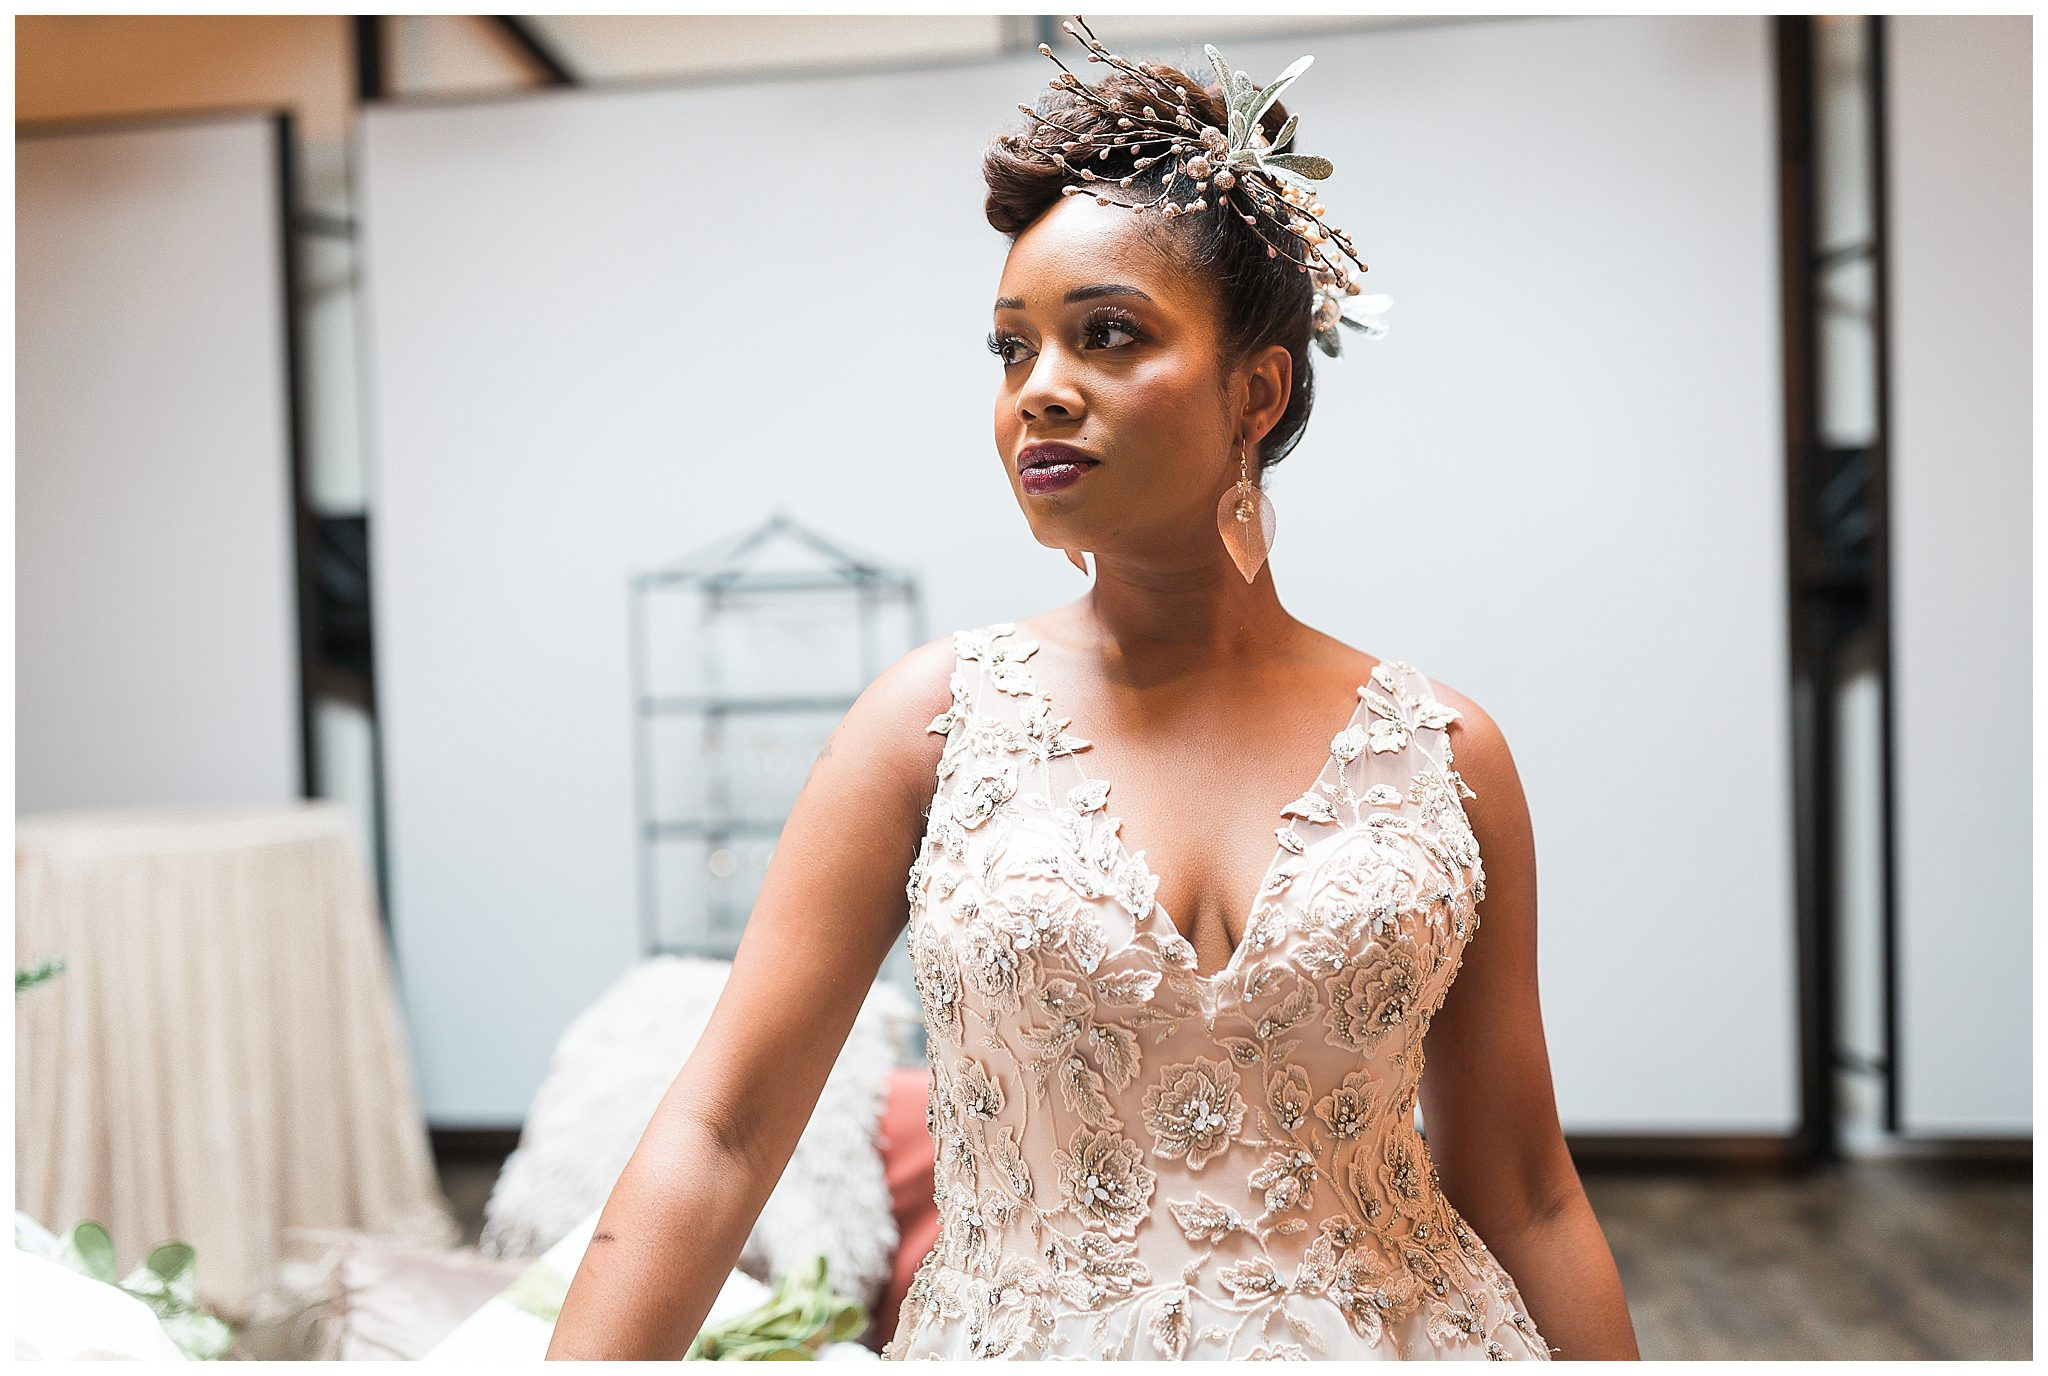 Top Black Wedding Photographer Raleigh NC